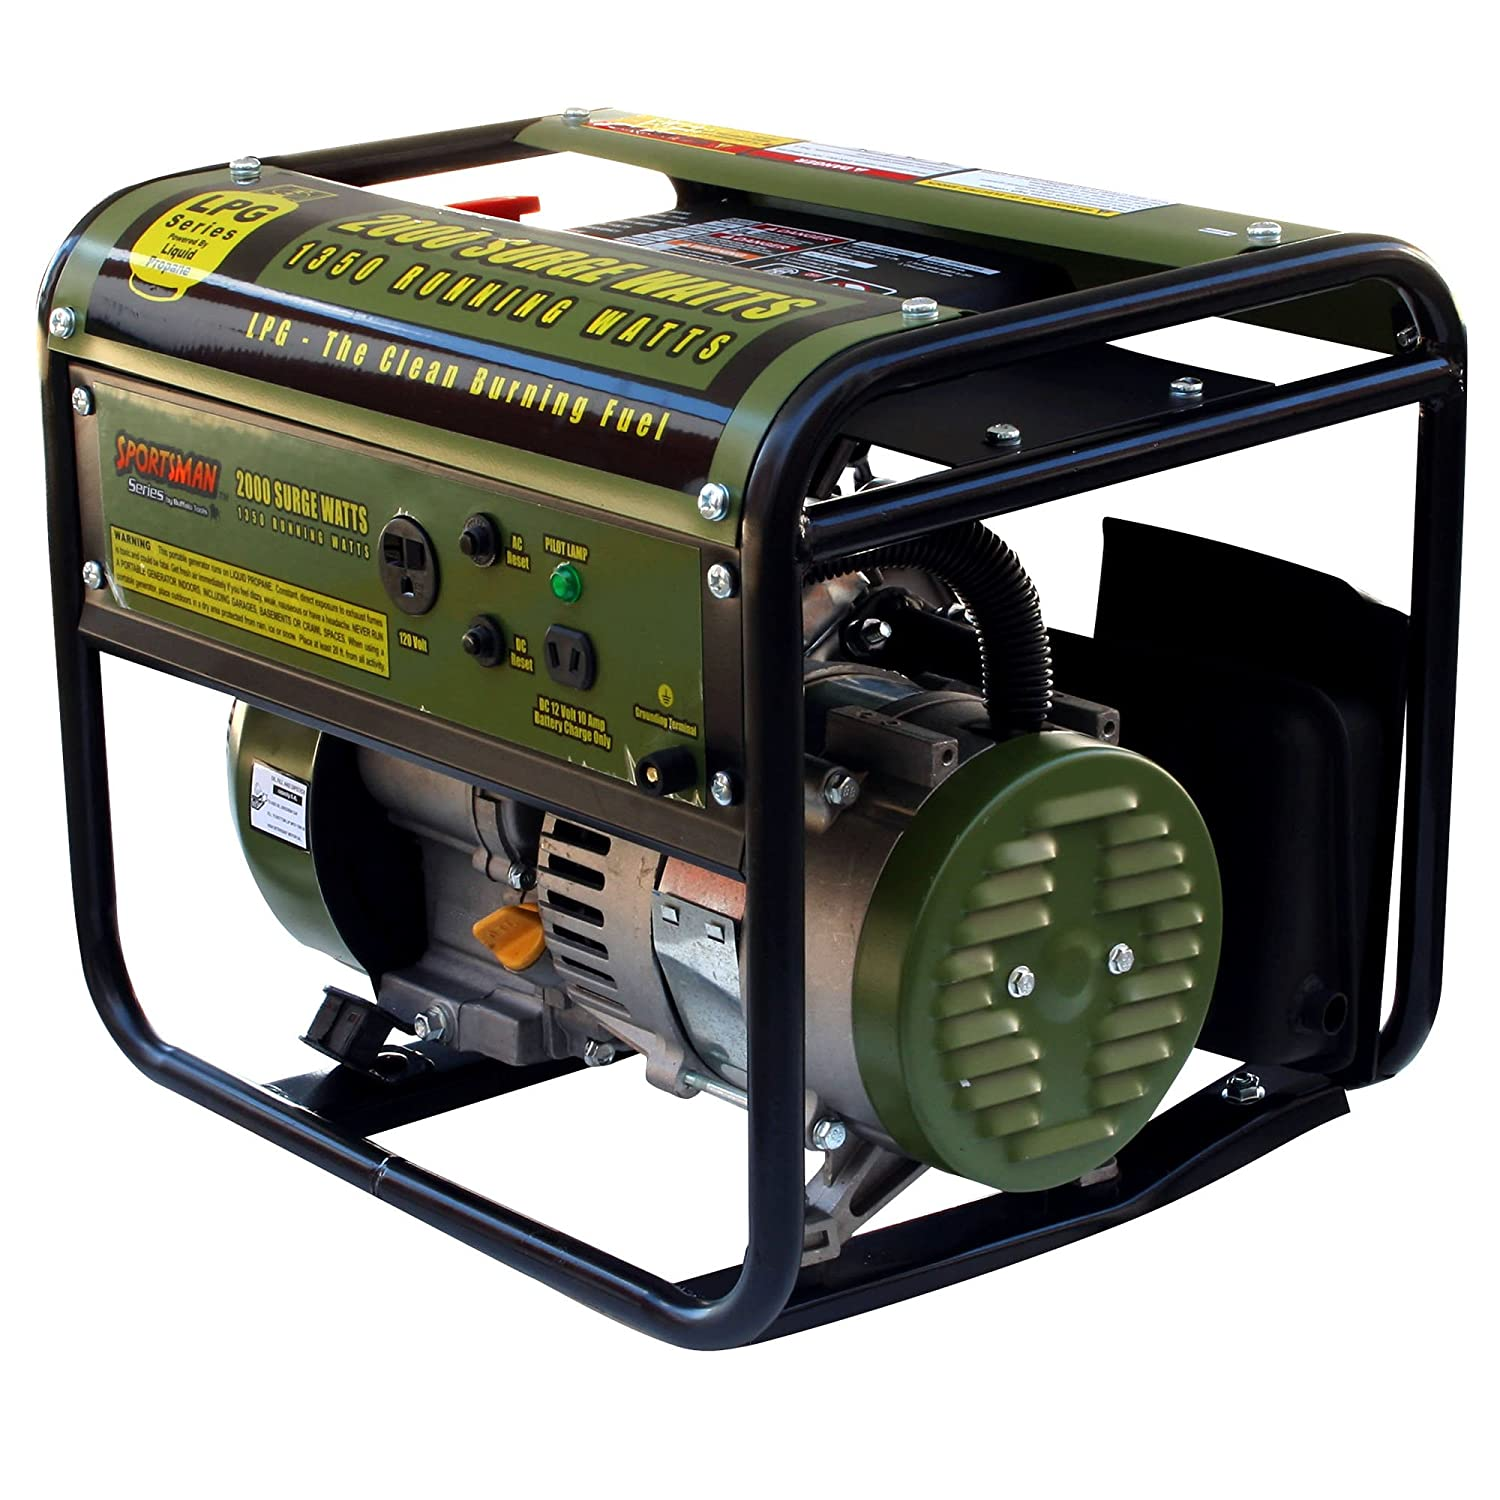 Amazon Sportsman GEN2000LP 2 000 Watt 2 8 HP OVH Propane